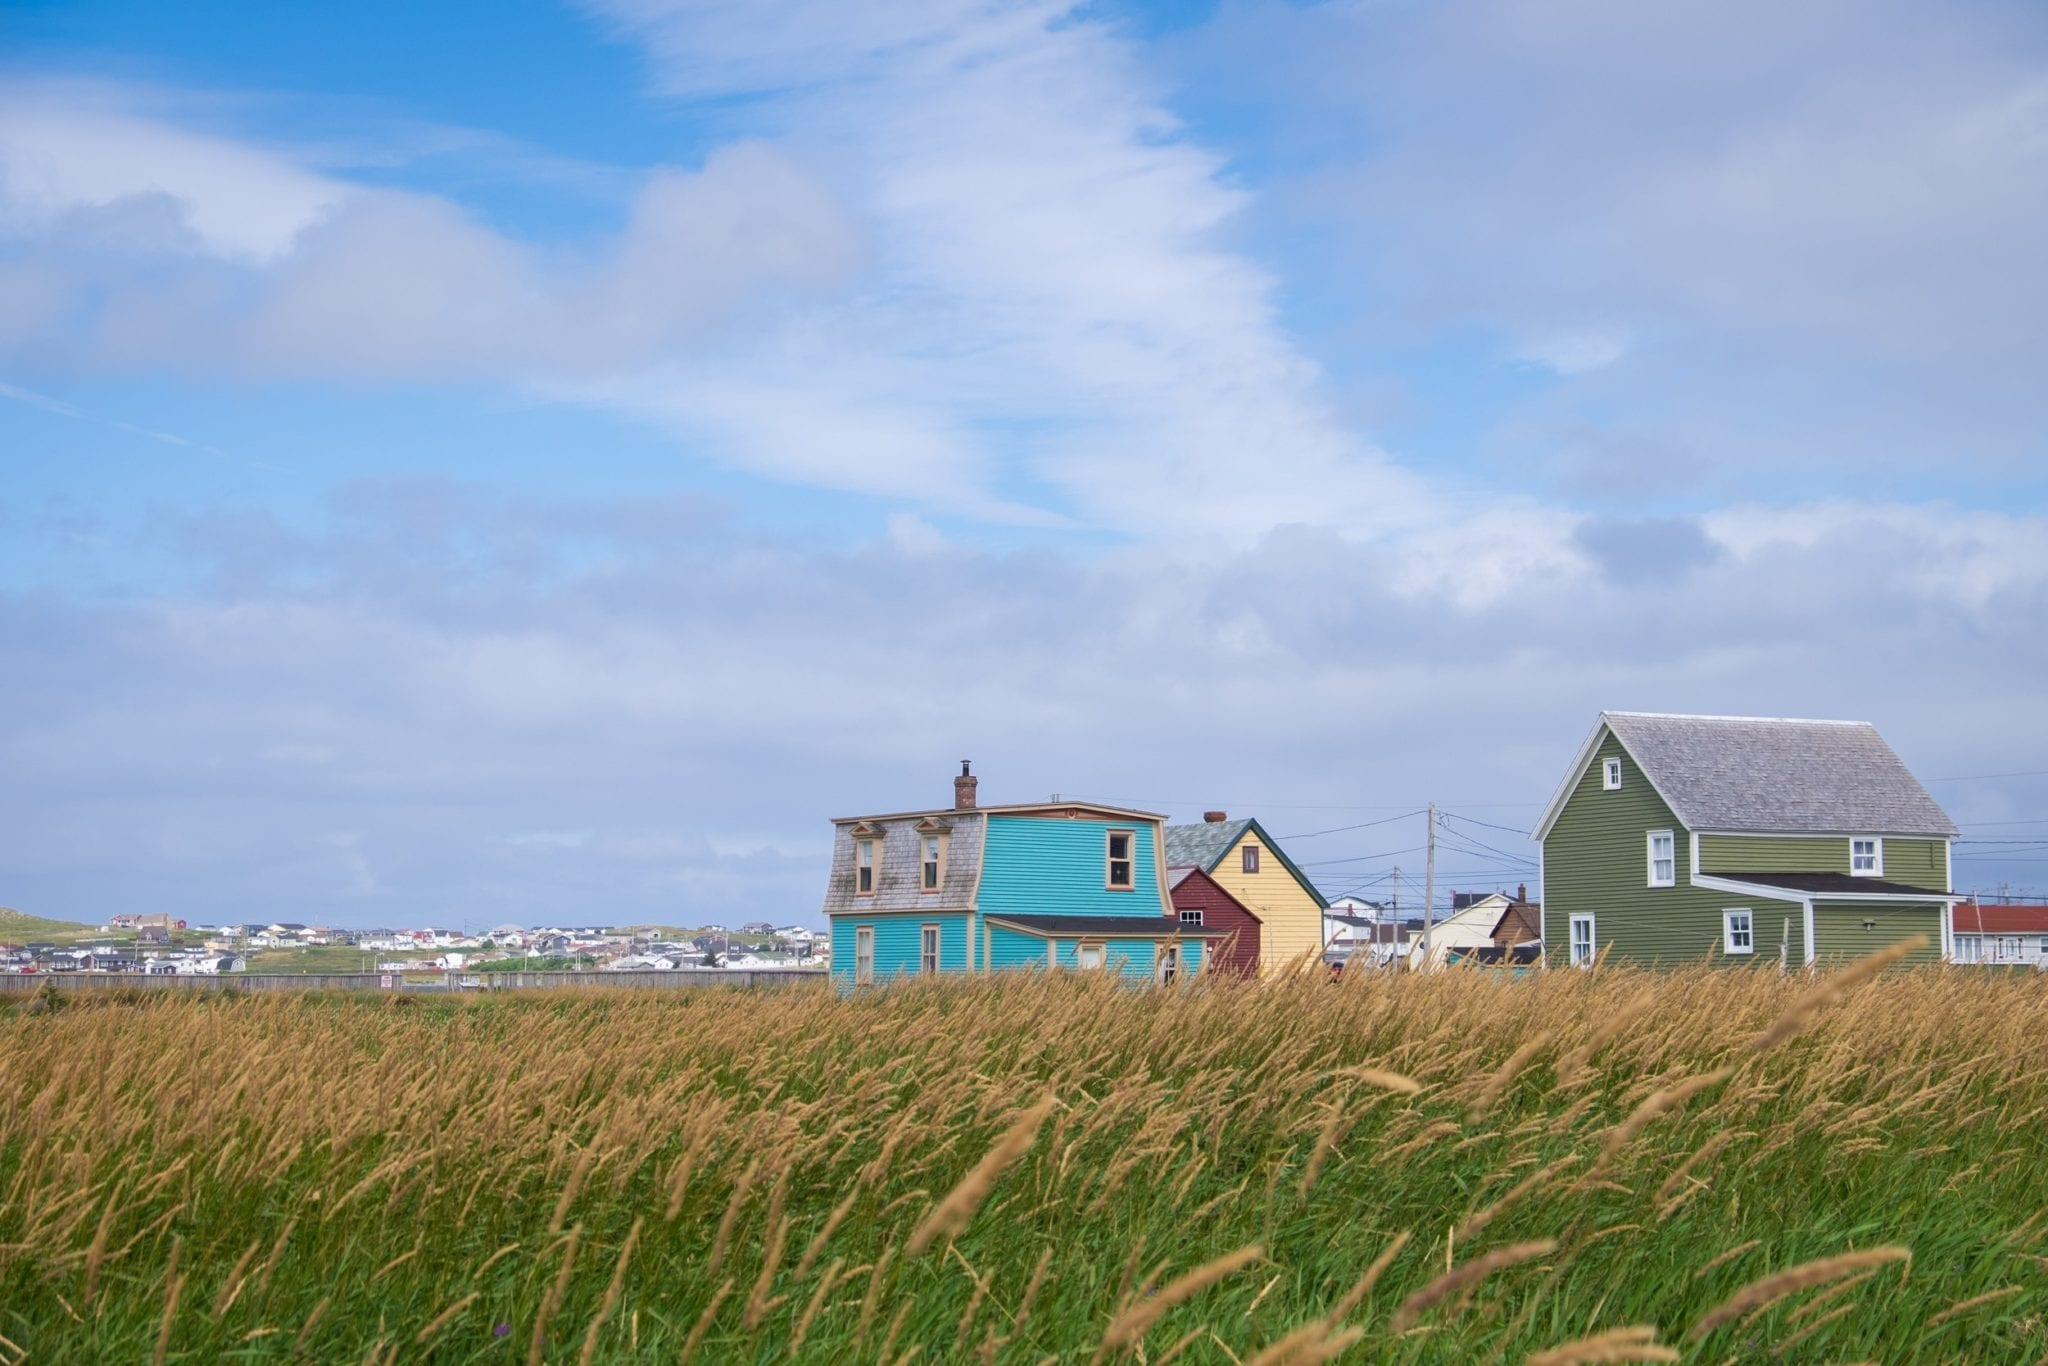 Two houses, one turquoise and one pea green, on a grassy landscape in Bonavista, Newfoundland.